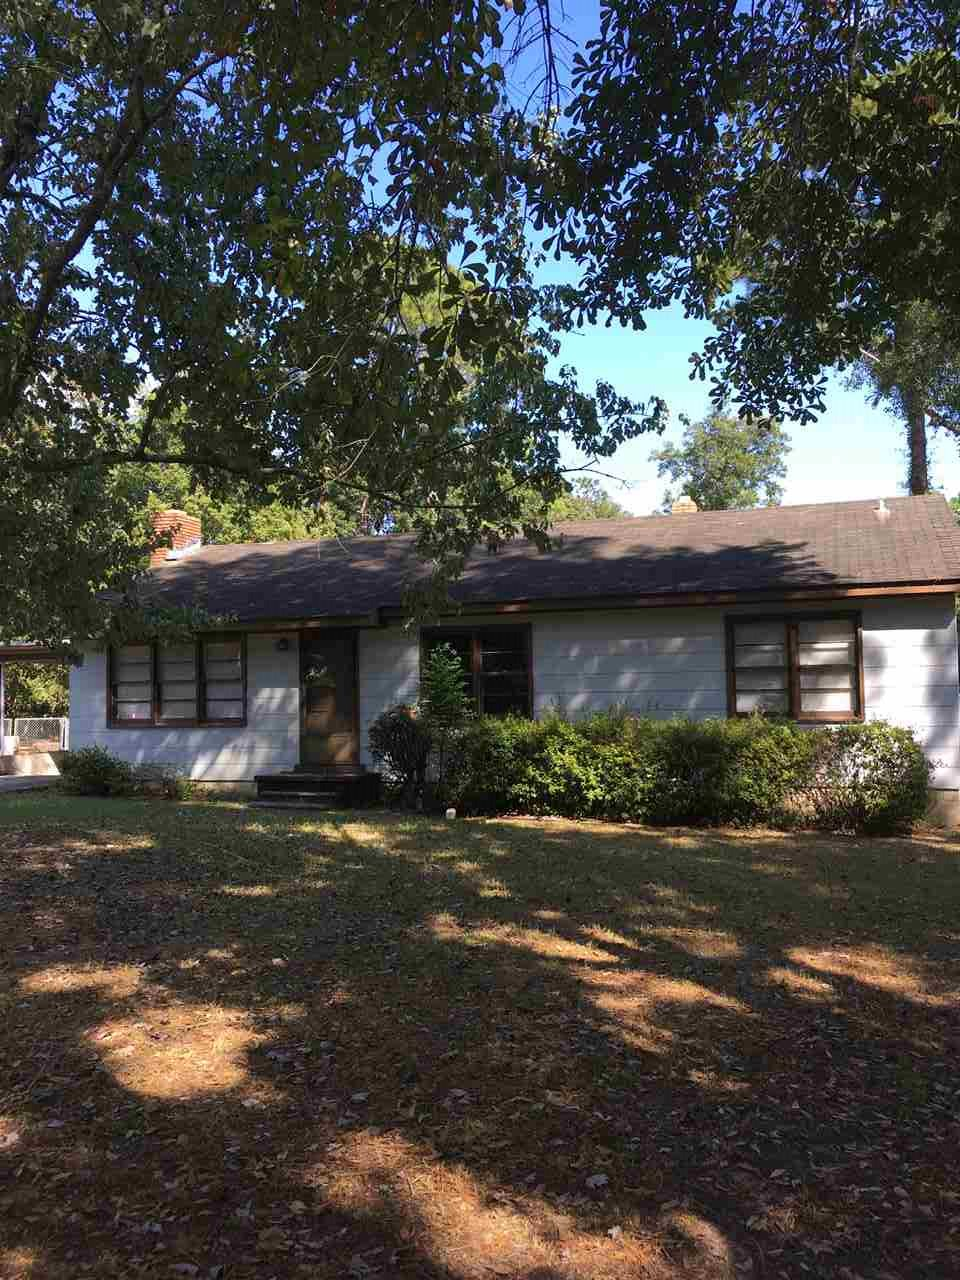 1707 Monticello, TALLAHASSEE, Florida 32303, 3 Bedrooms Bedrooms, ,4 BathroomsBathrooms,Single Family,For Sale,1707 Monticello,1,311609